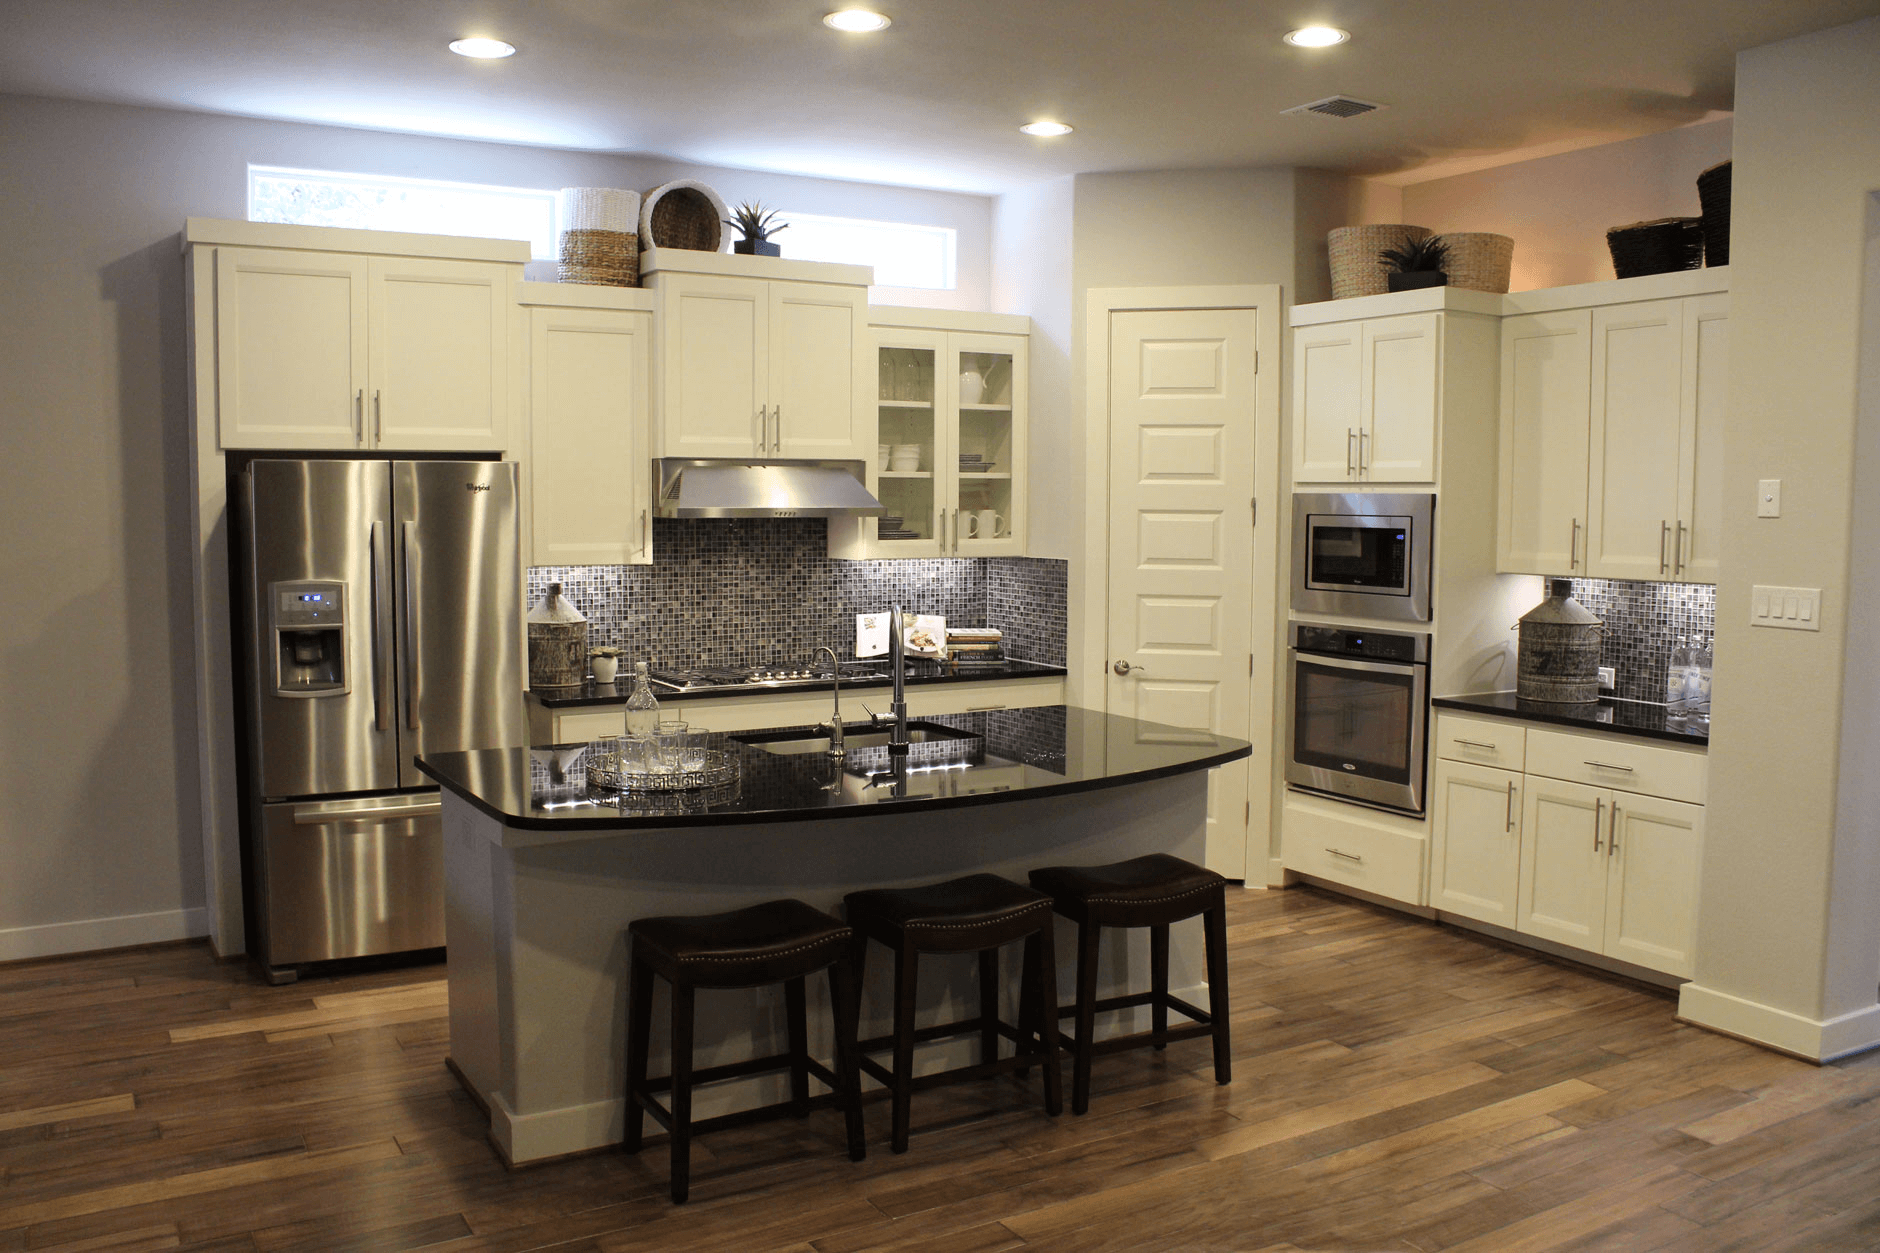 Kitchen Counter Cabinet Combinations Countertop Cabinet And Floor Are Three Dominating Components In